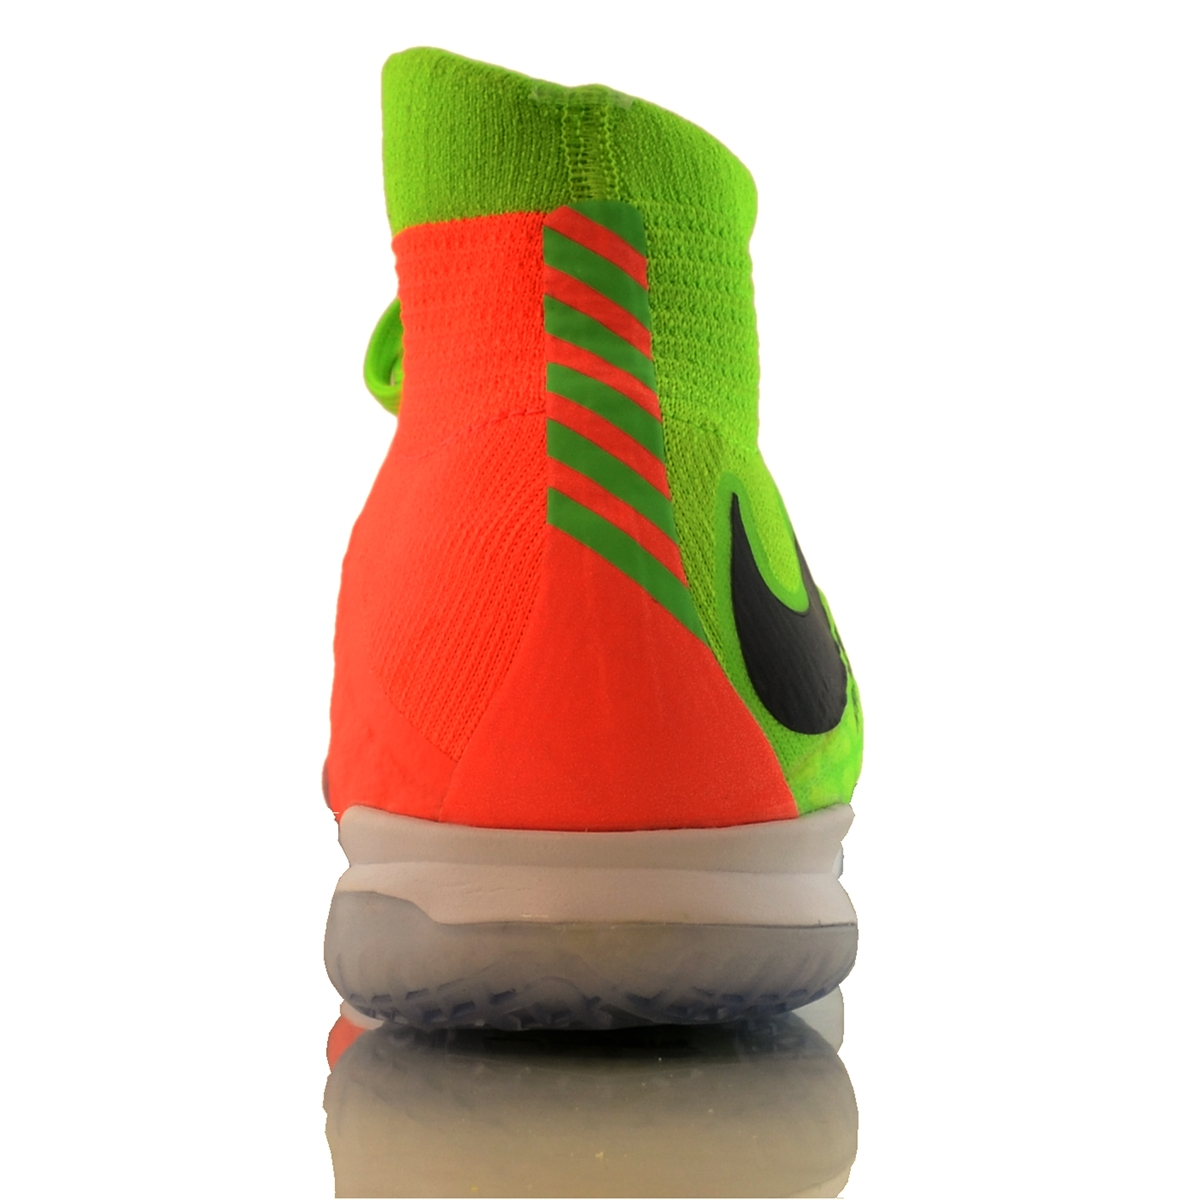 c43437e52c73d5 Nike Youth HypervenomX Proximo II DF IC Indoor Soccer Shoes ...